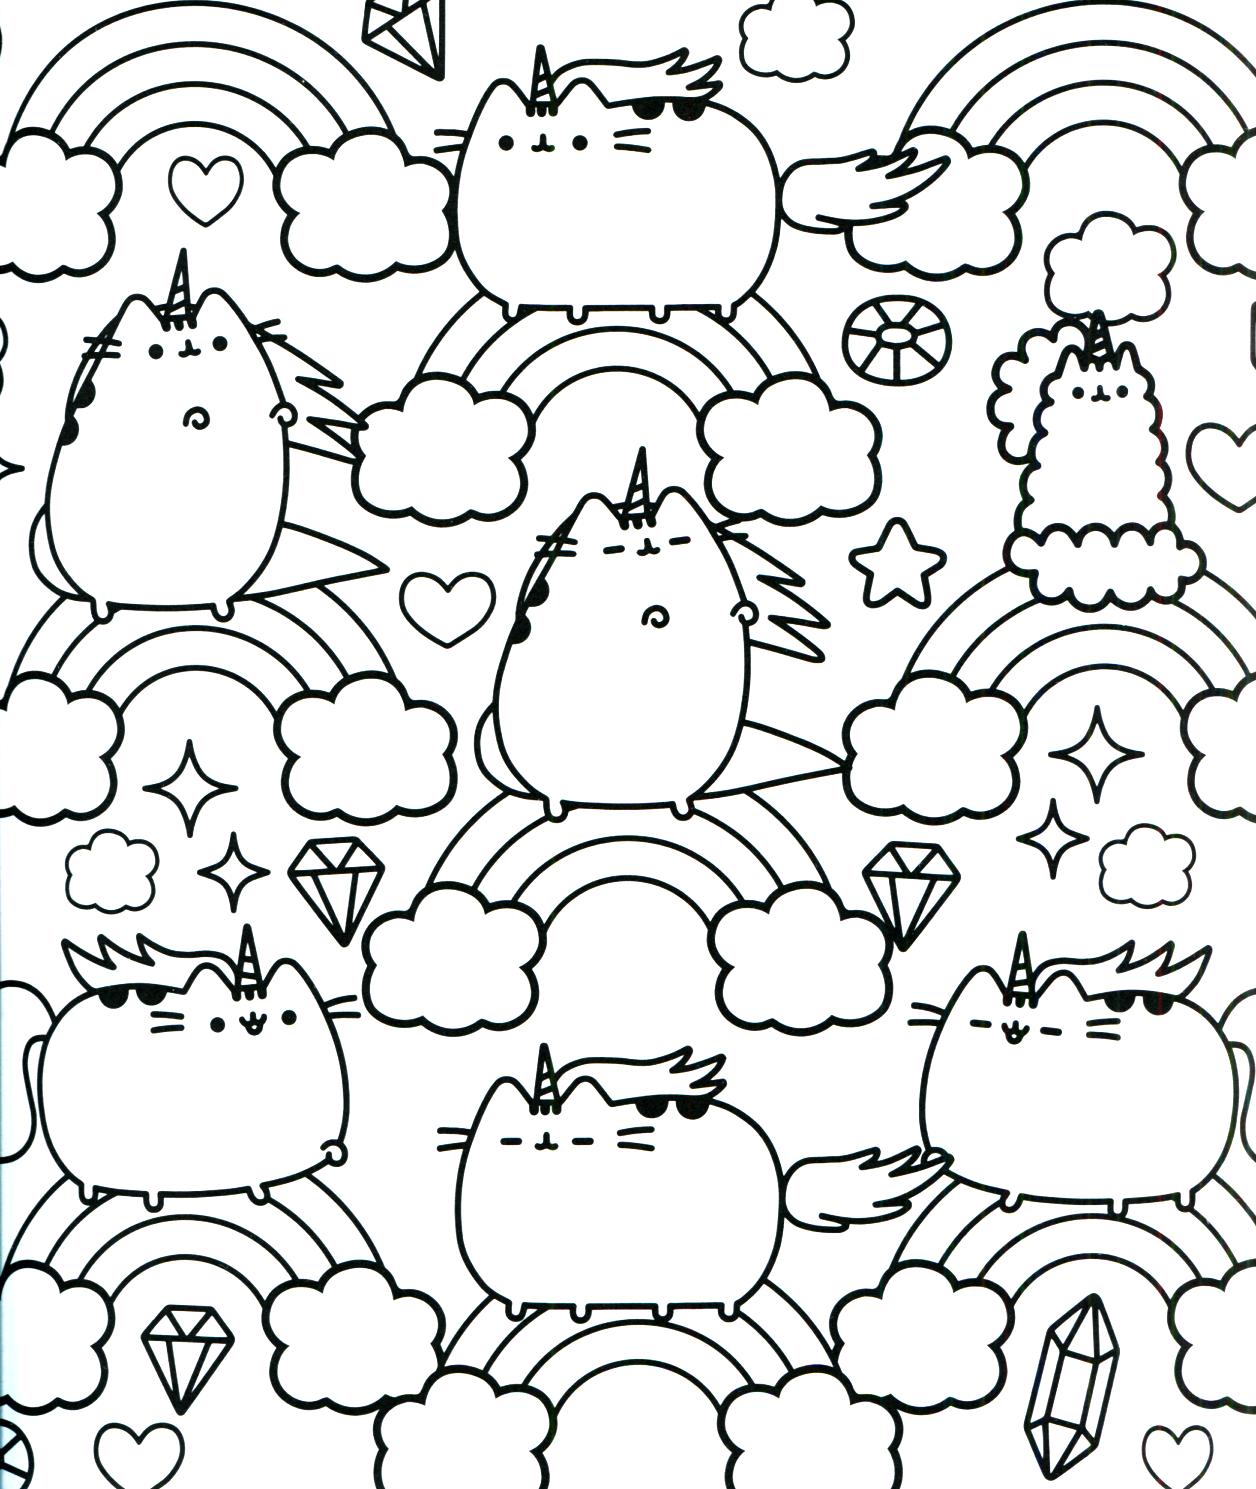 unicorn pusheen coloring pages